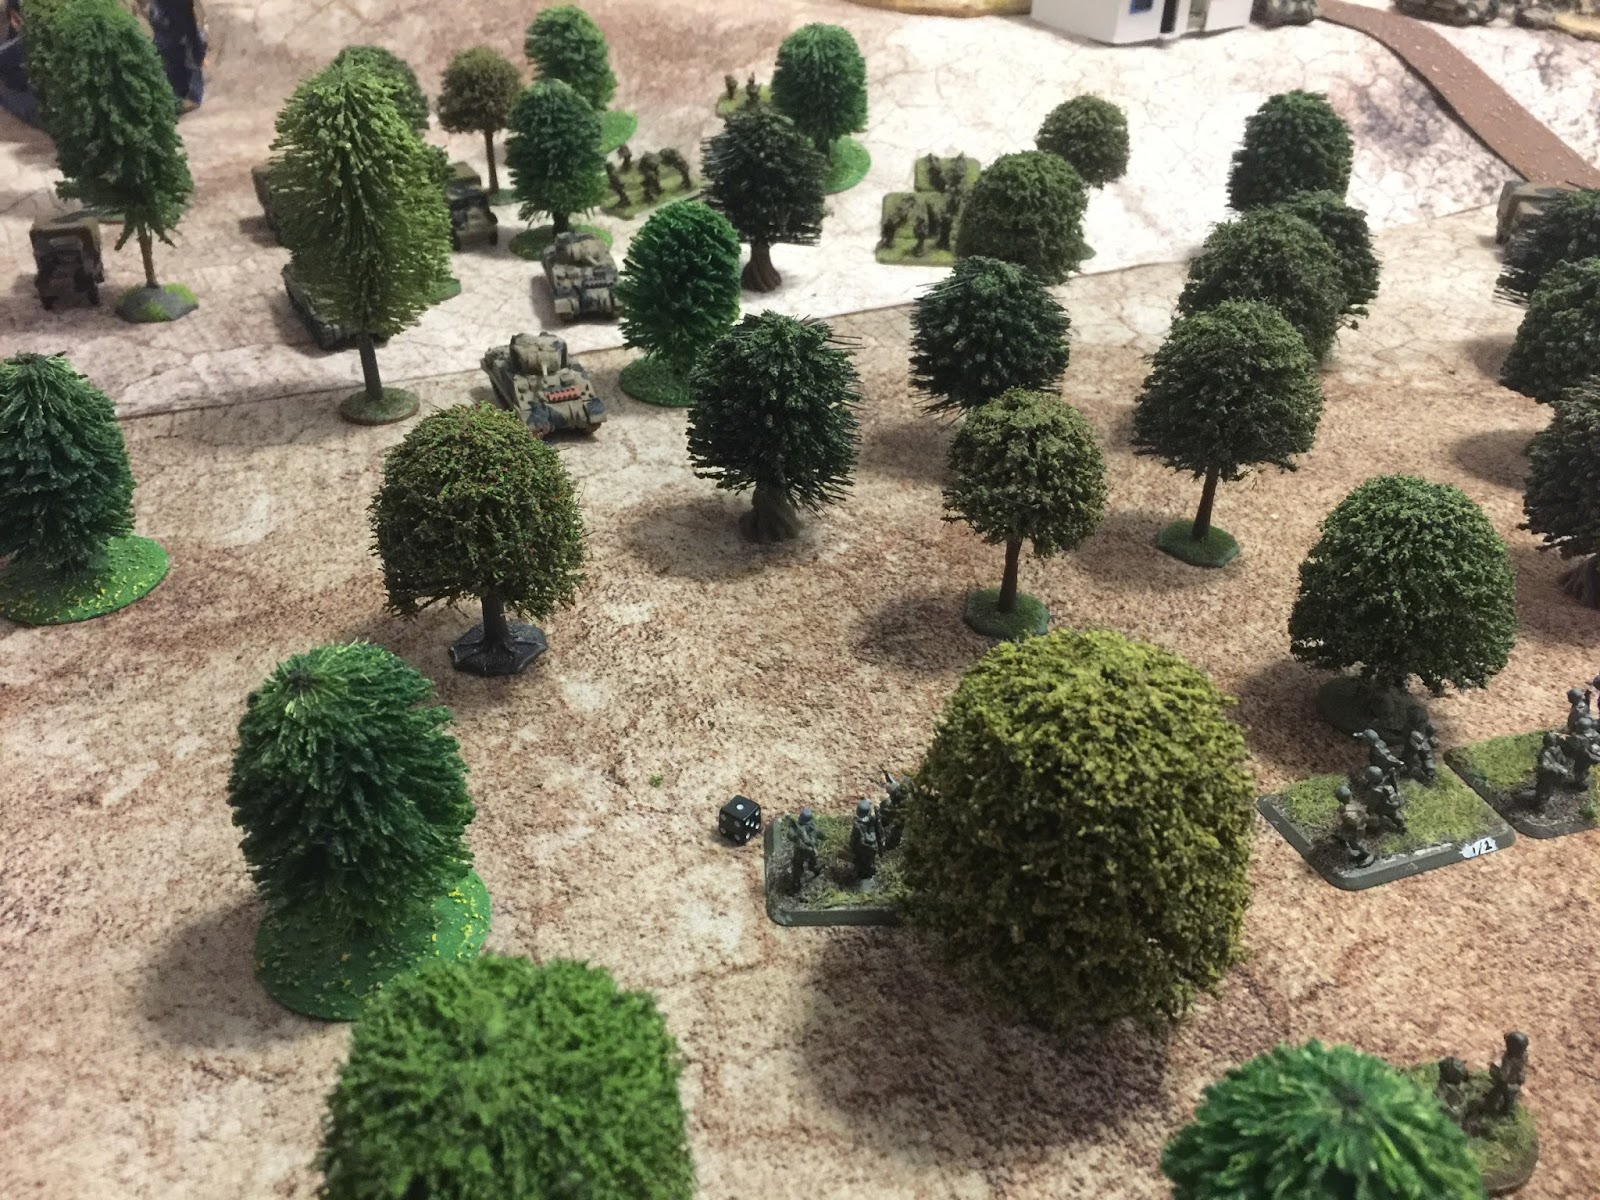 A troop of the 16th/5th Lancers are forcing their way through the olive grove. The German Zug is rather regretting its decision to re-enter the trees.